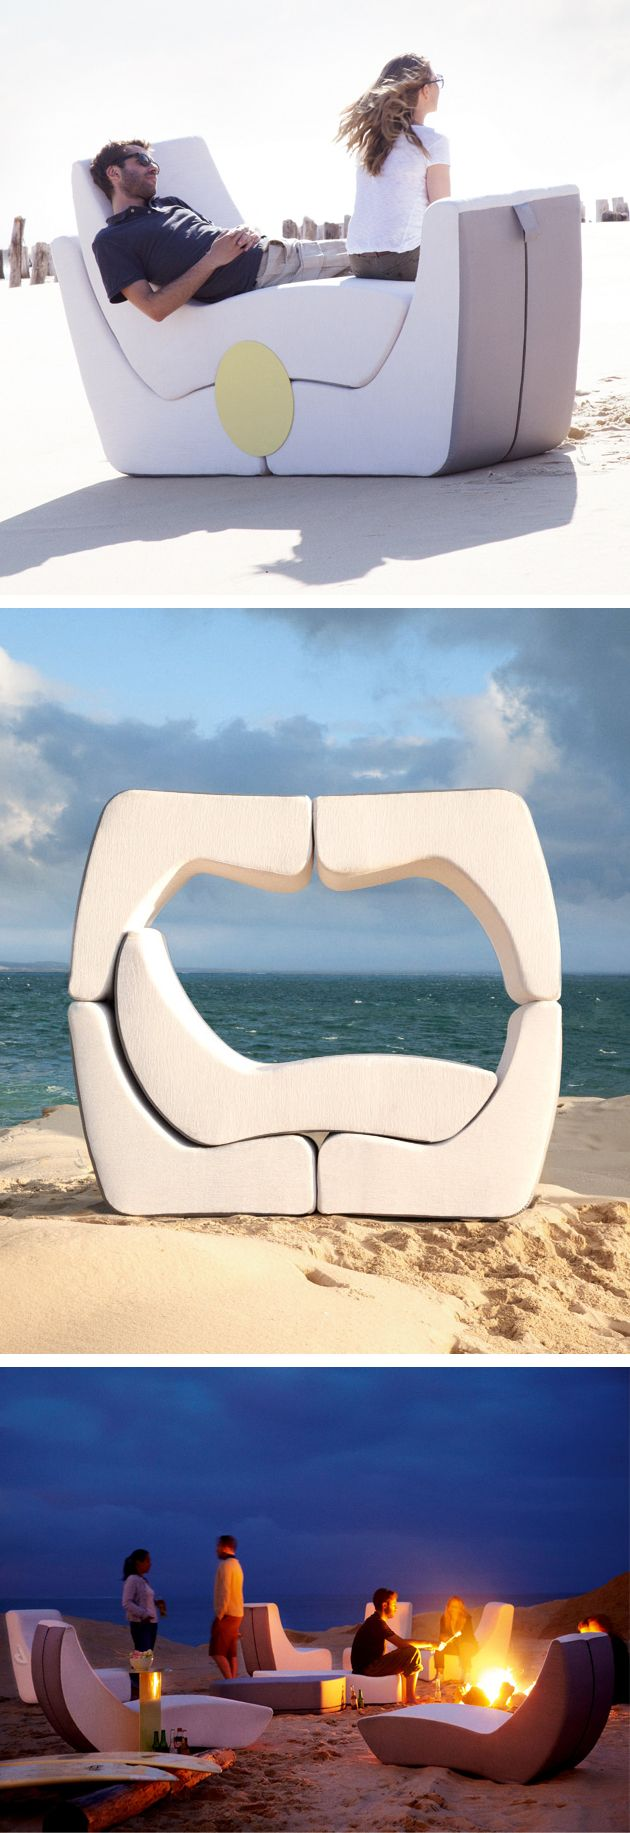 Puzzle Outdoor Lounge Set Epic Design Good For One To Six Or More People Furniture